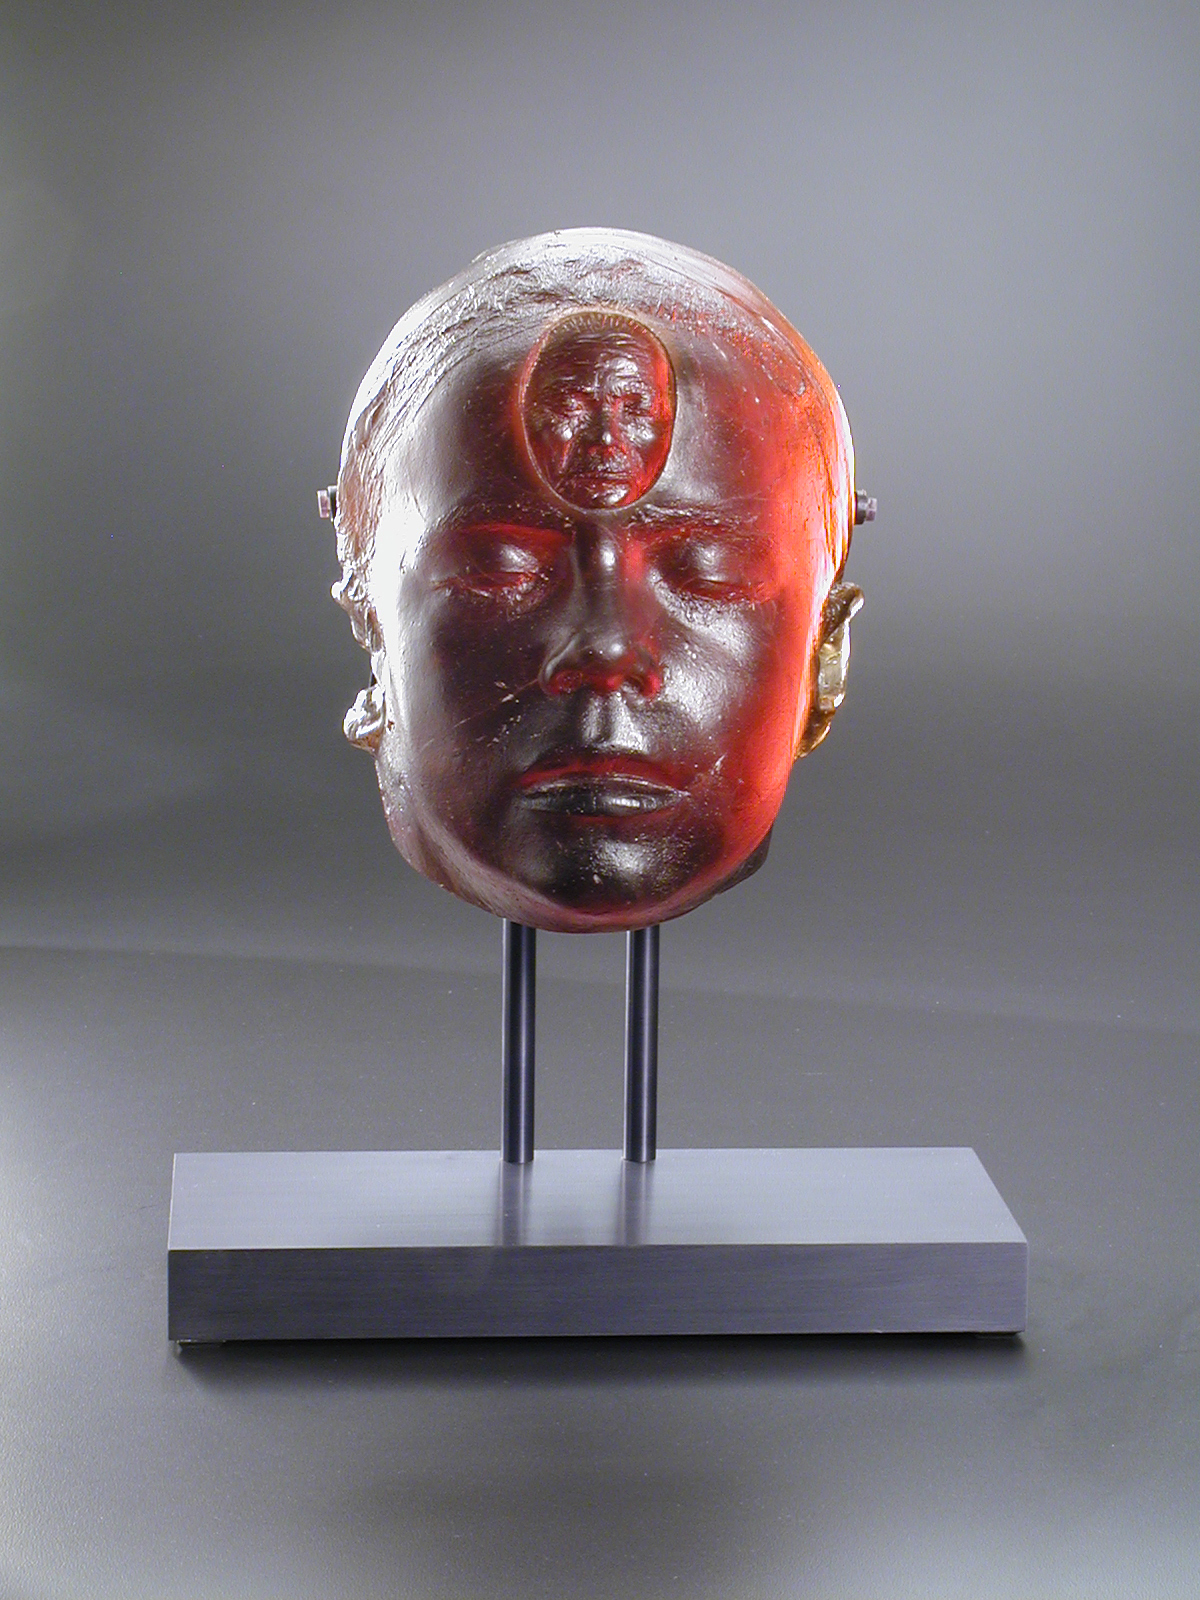 Sculpture of face with small head in forehead on metal stand.